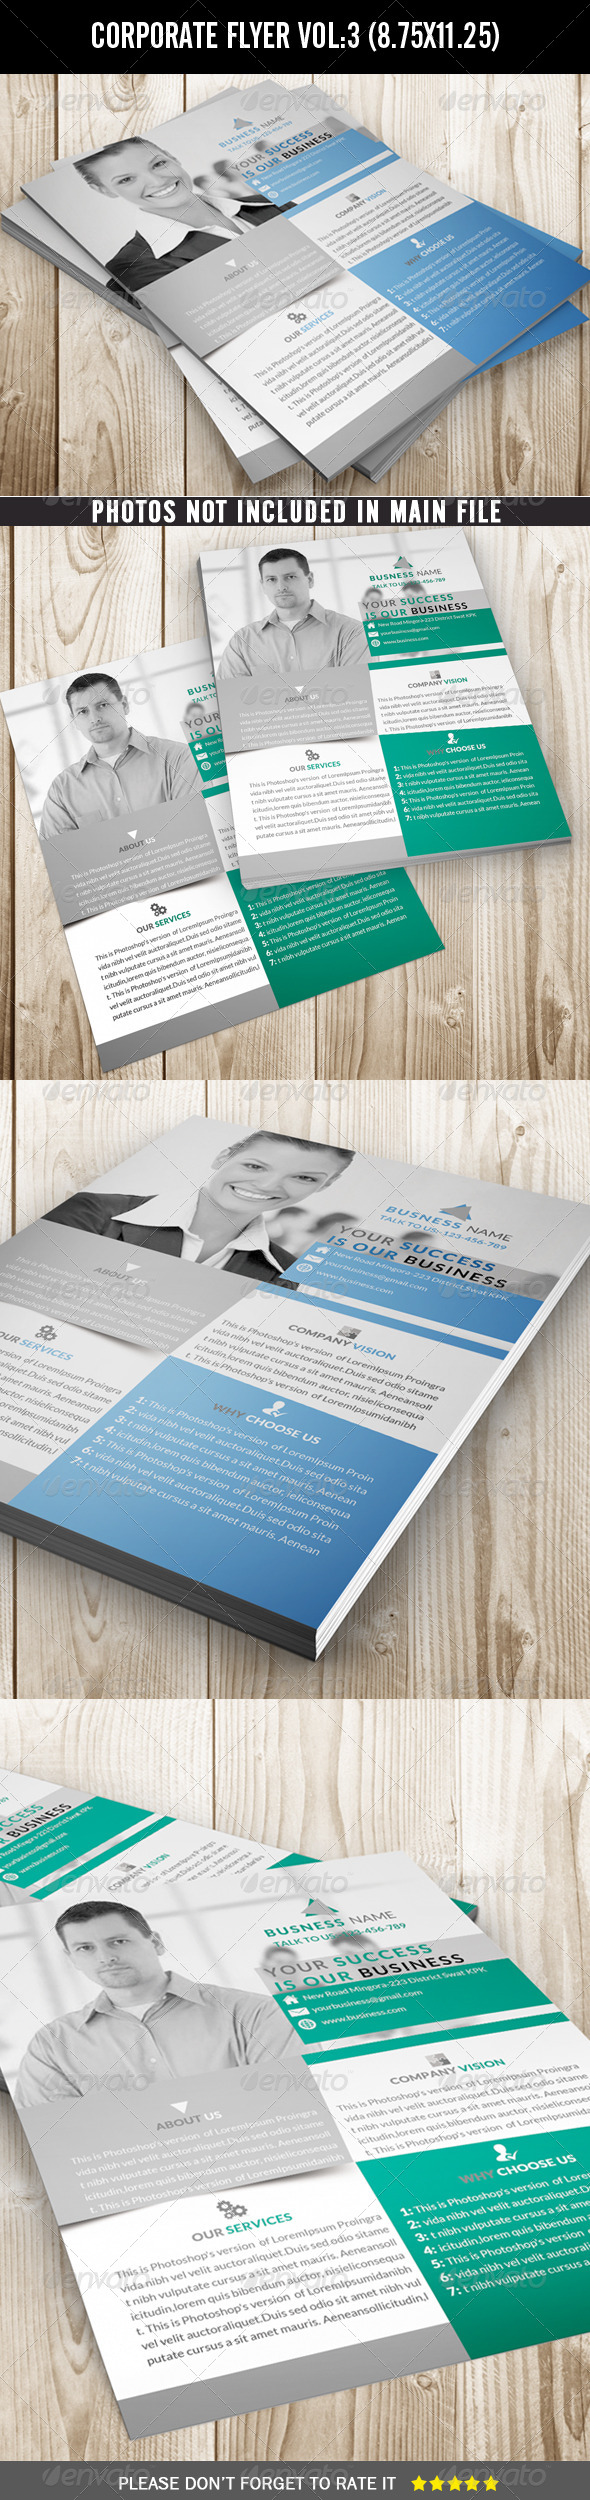 Corporate Flyer (Clean and Simple) - Corporate Flyers